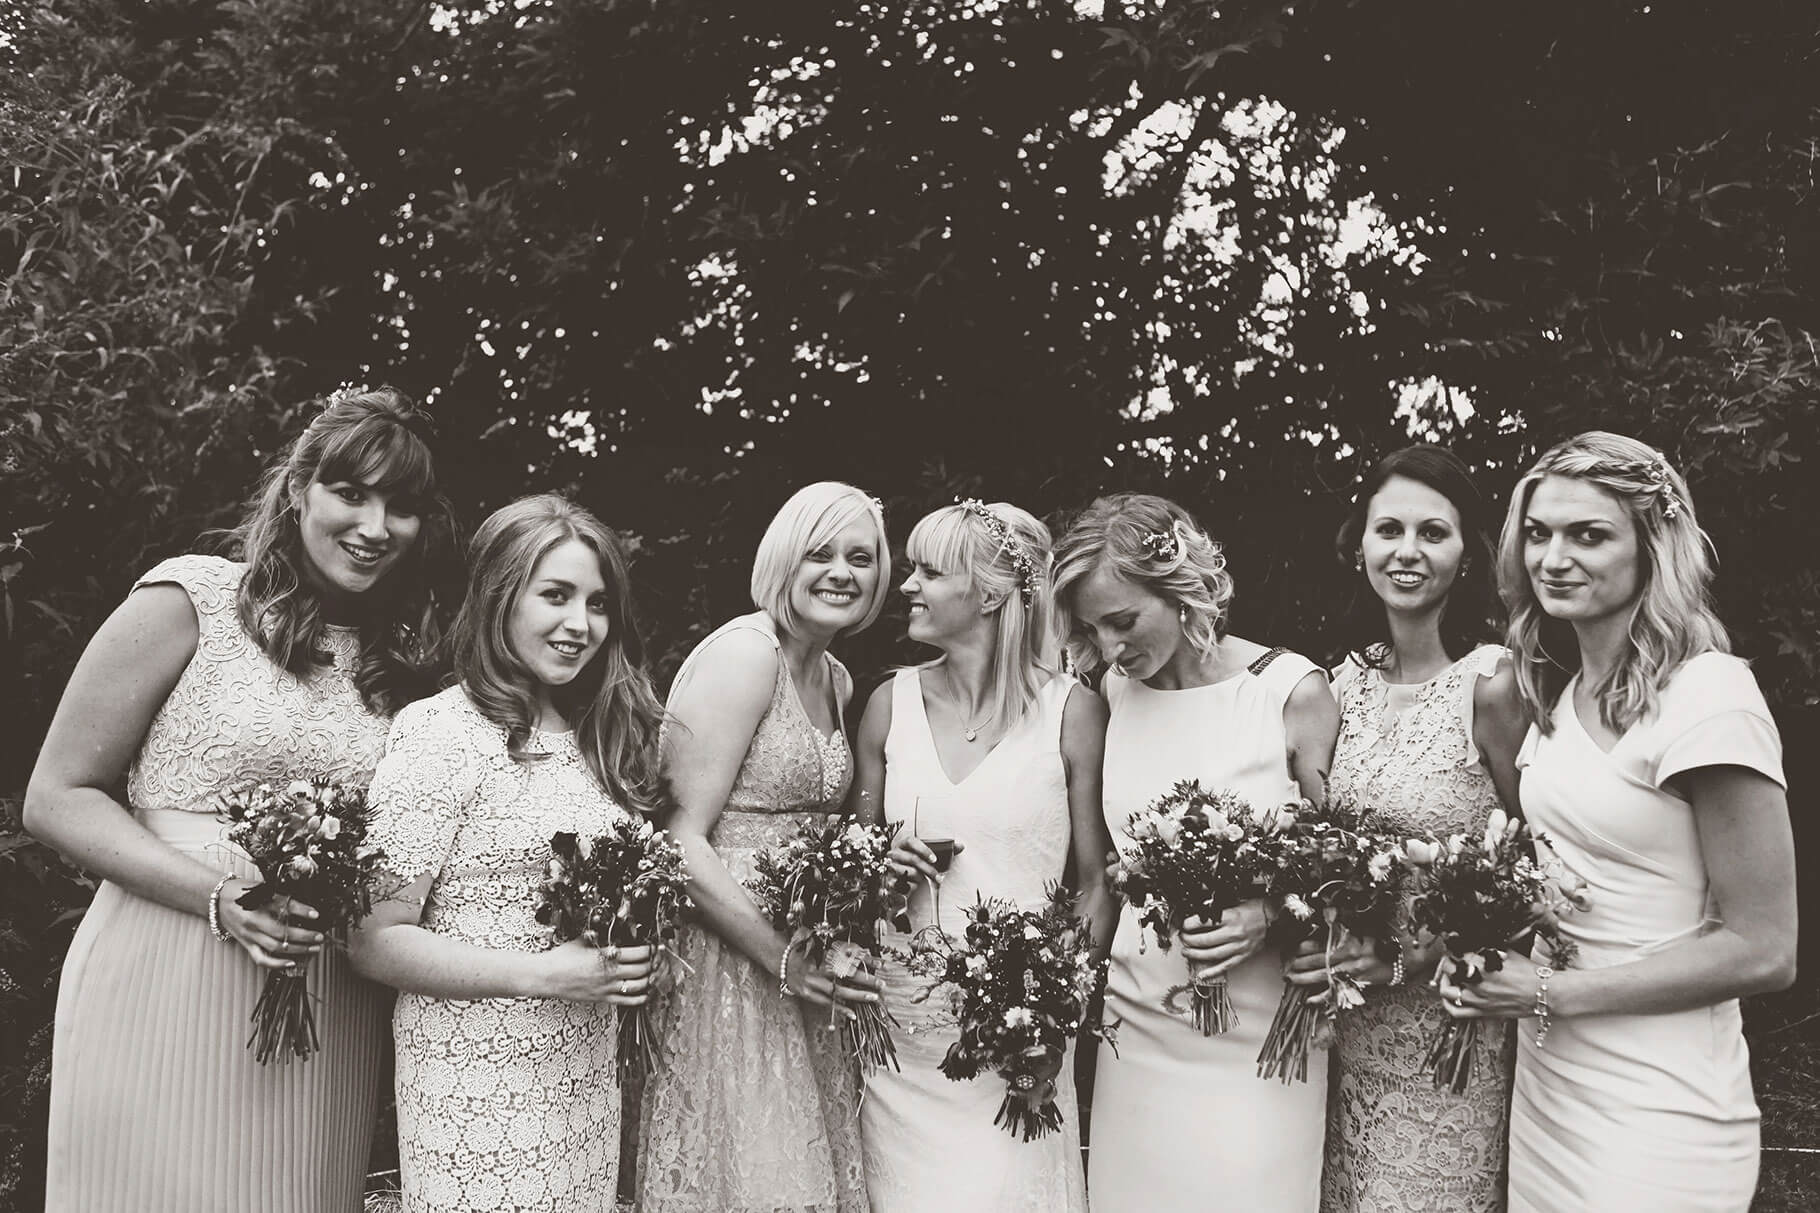 Black and White Photograph of Bridesmaids